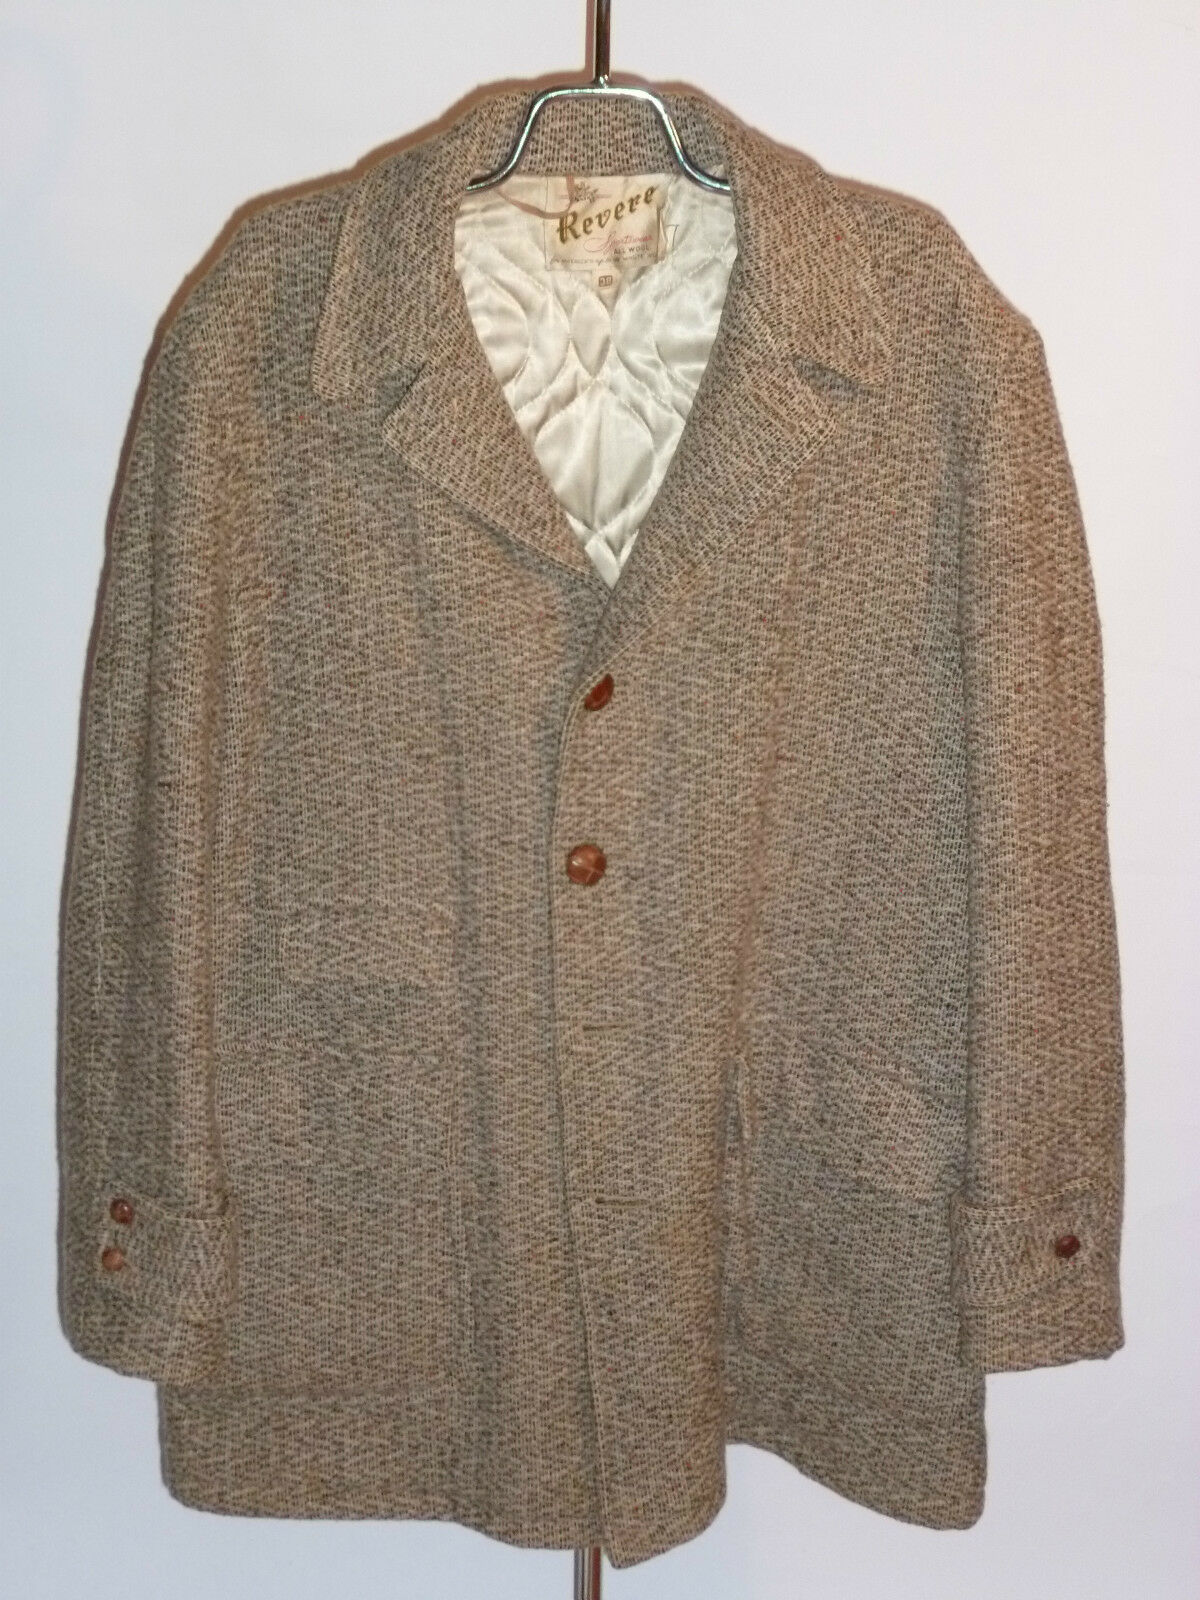 VINTAGE 1940s REVERE SPORTSWEAR ALL WOOL STADIUM COAT  TWEED  QUILTED LINING  38